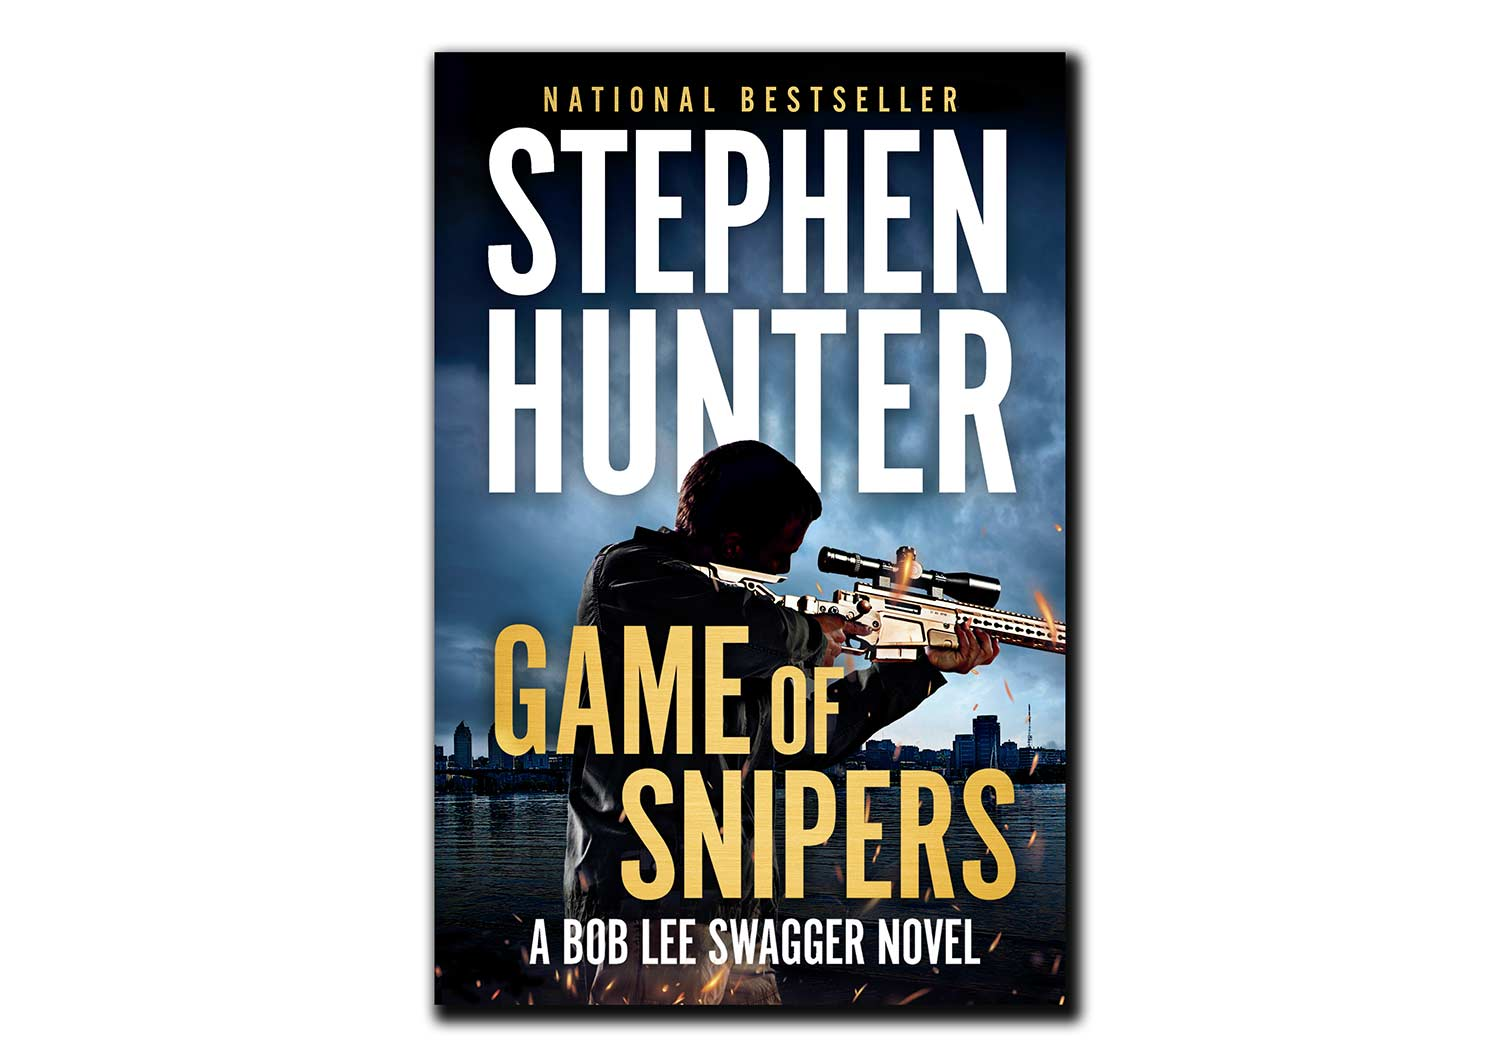 Game of Snipers book